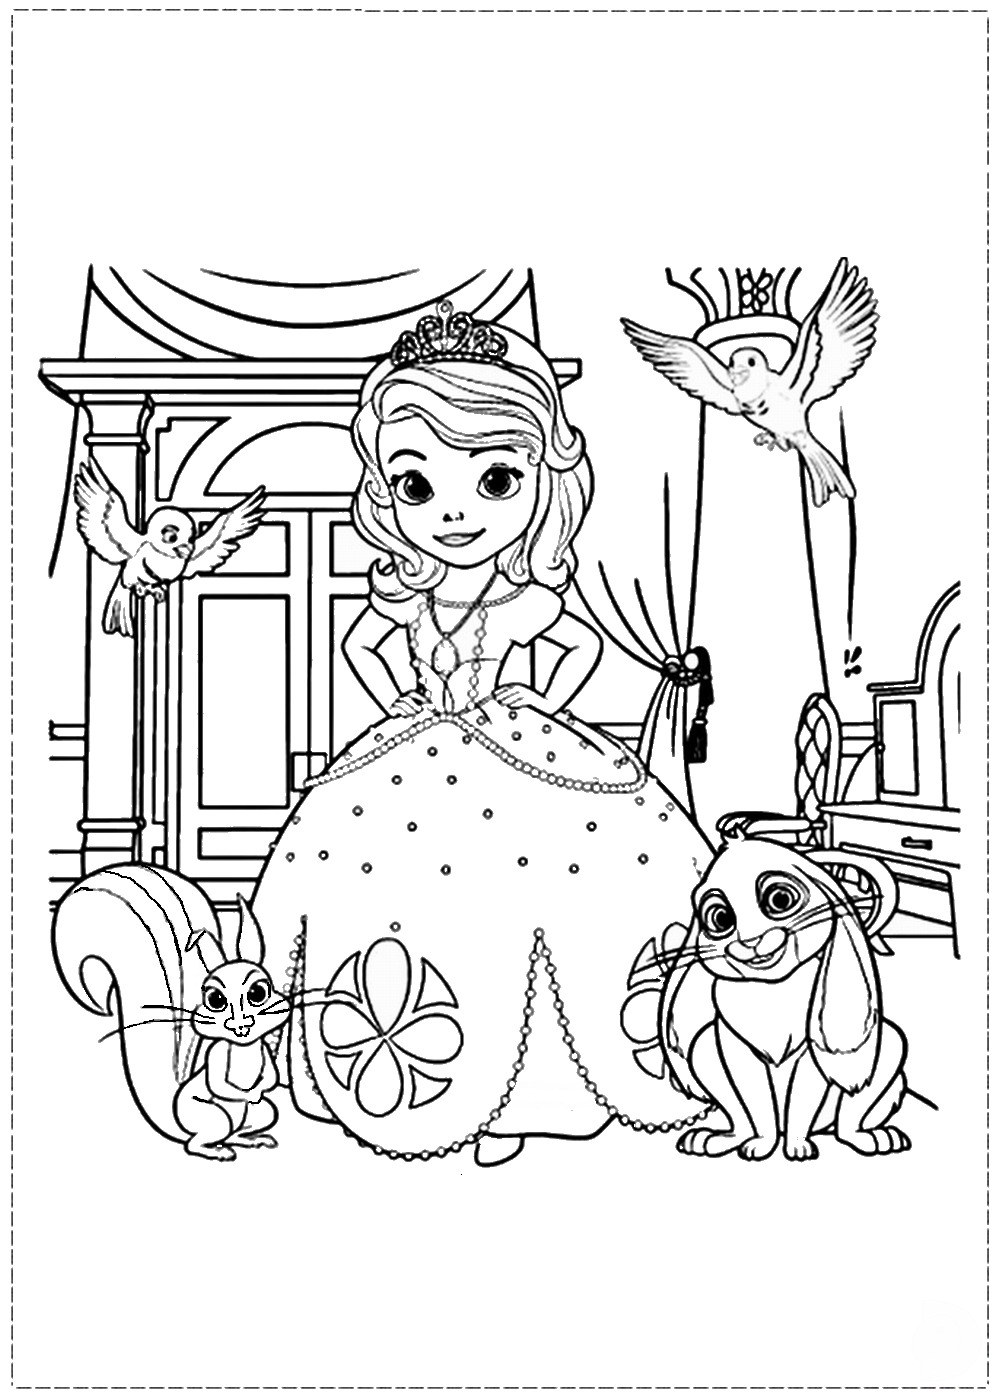 sofia first coloring pages sofia the first drawing free download on clipartmag coloring pages sofia first